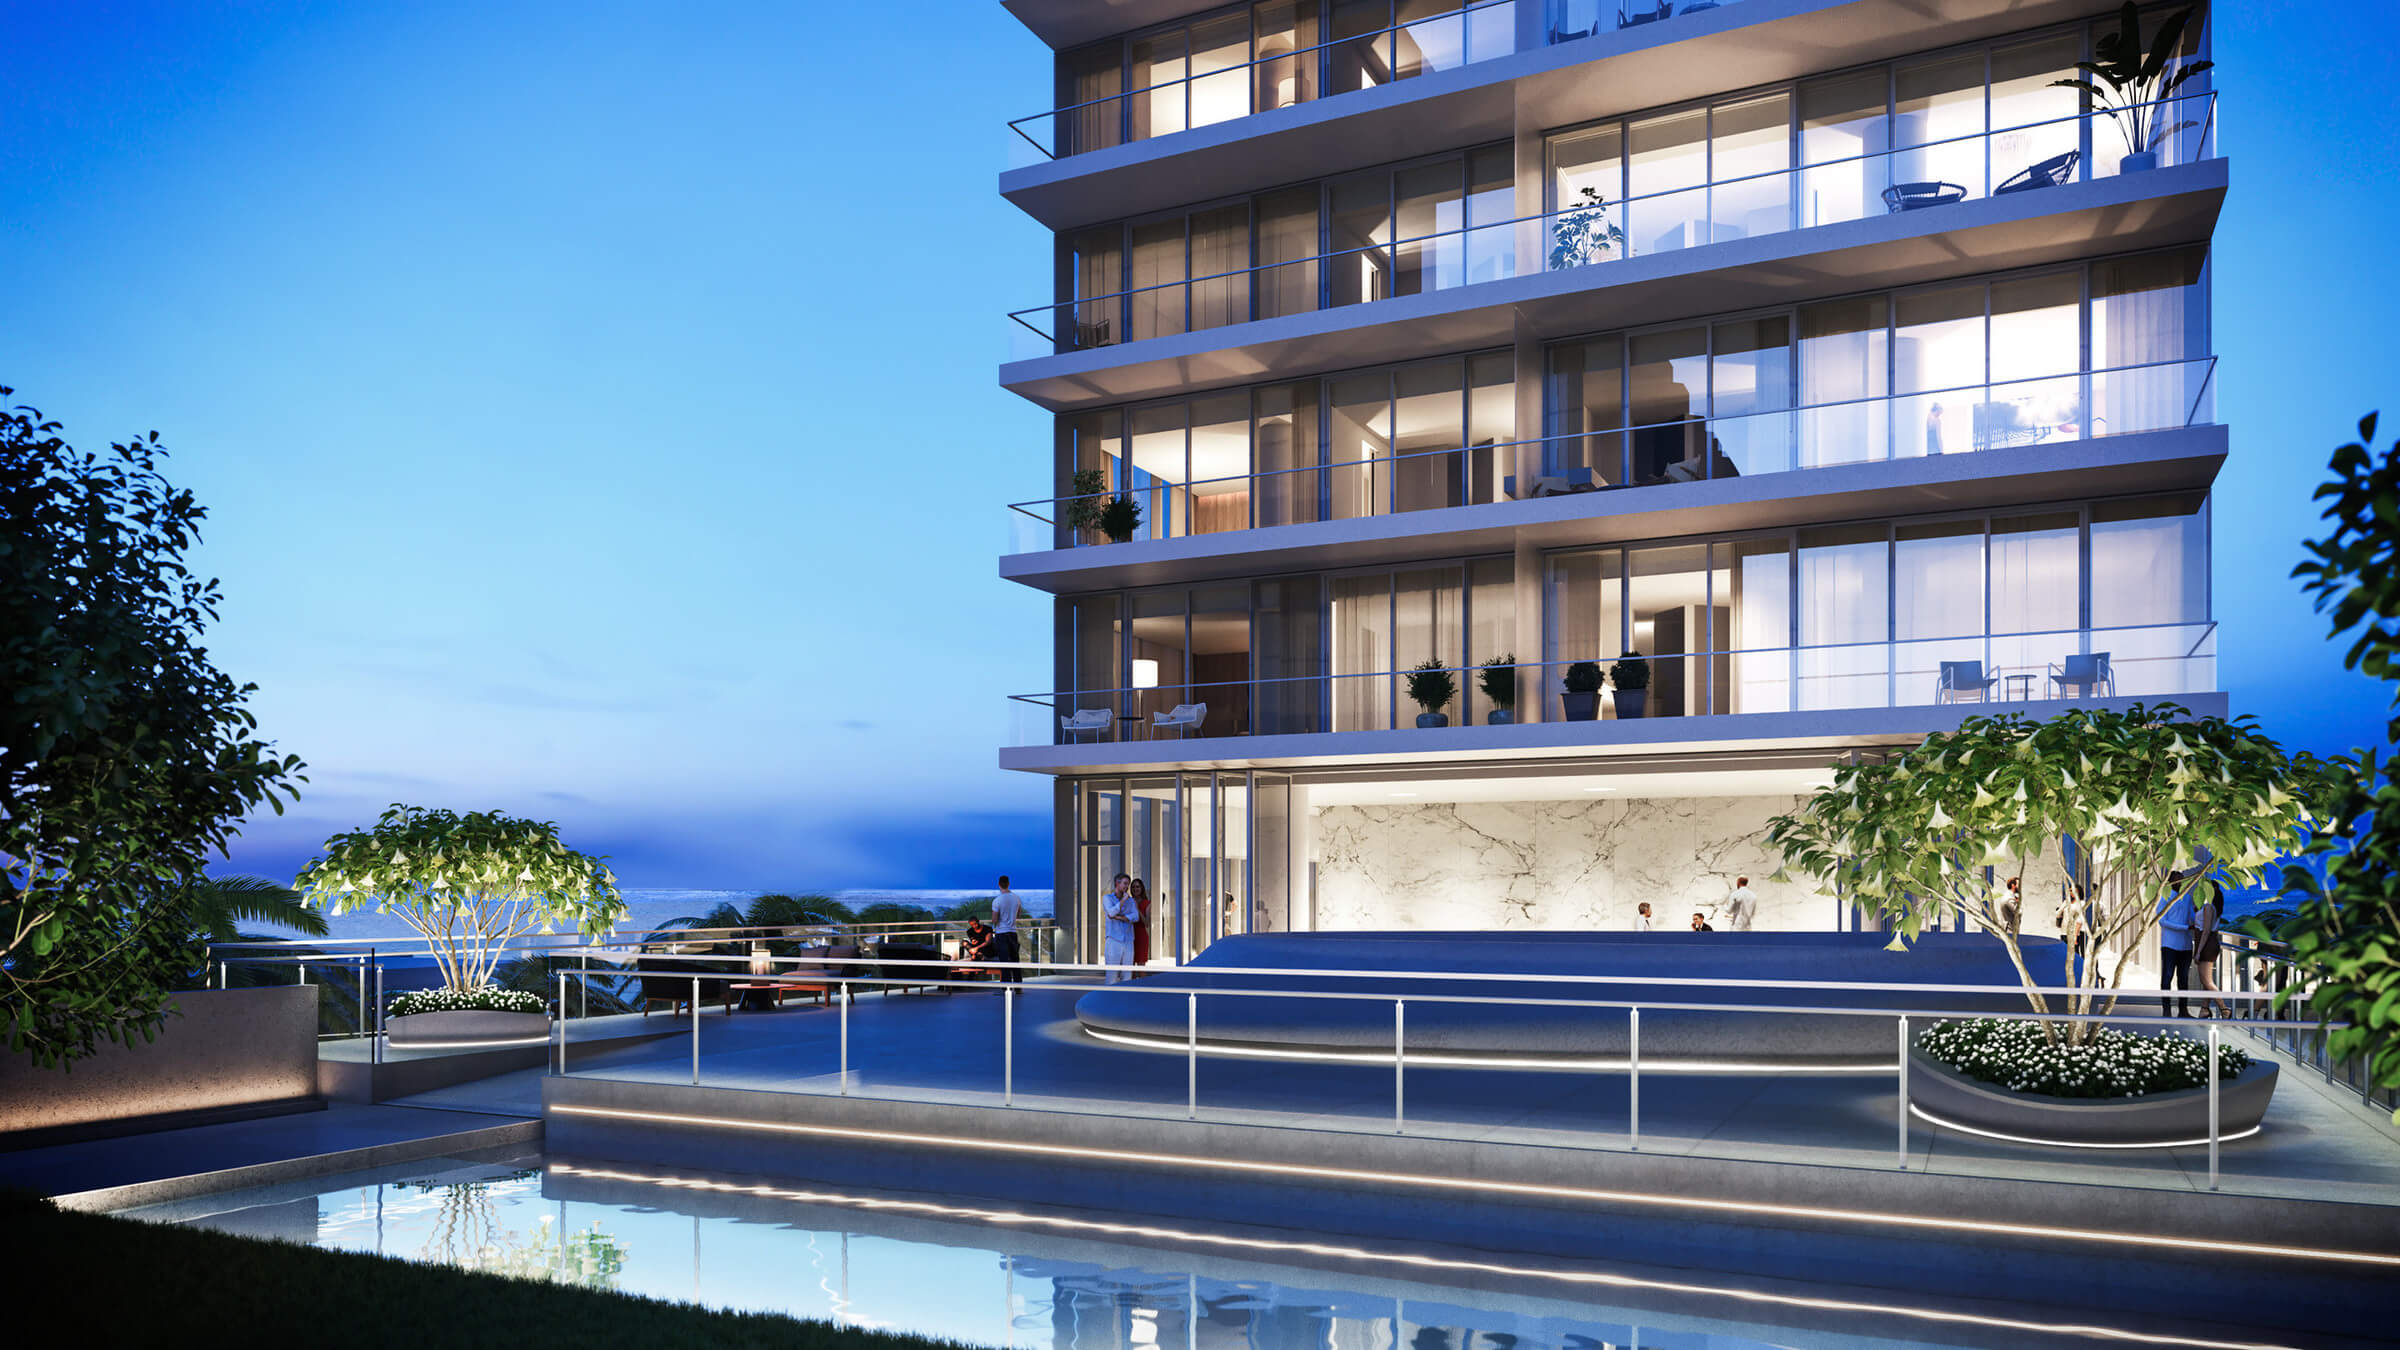 Luxury High Rise Apartments - Hallandale Beach, FL | Luxury Real Estate